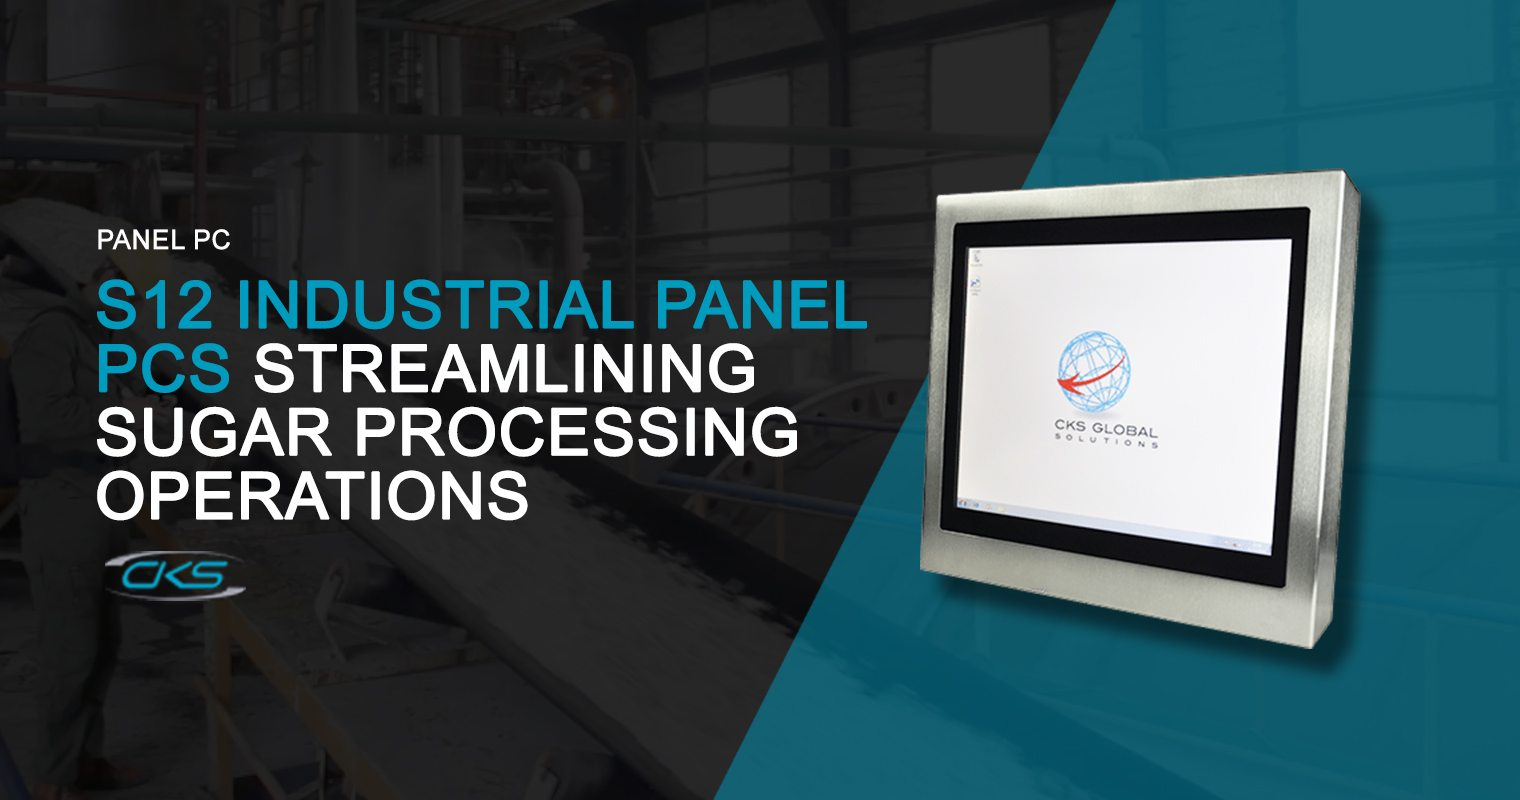 Streamline the Sugar Processing Operations Using the S12 Industrial Panel PCs